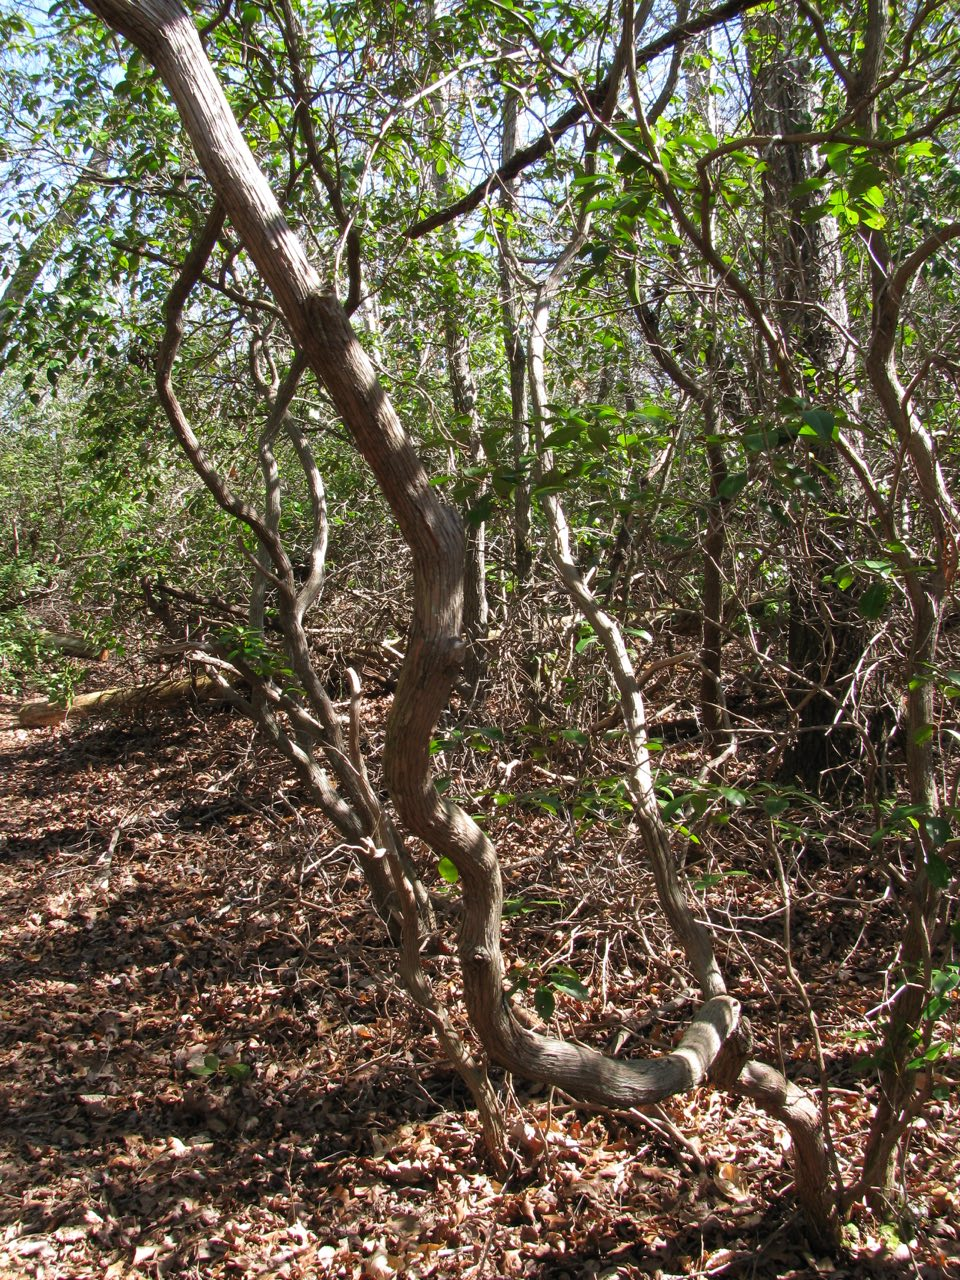 The Scientific Name is Kalmia latifolia. You will likely hear them called Mountain Laurel, Ivy, Calico-bush. This picture shows the Characteristic gnarled and twisted trunks of Kalmia latifolia